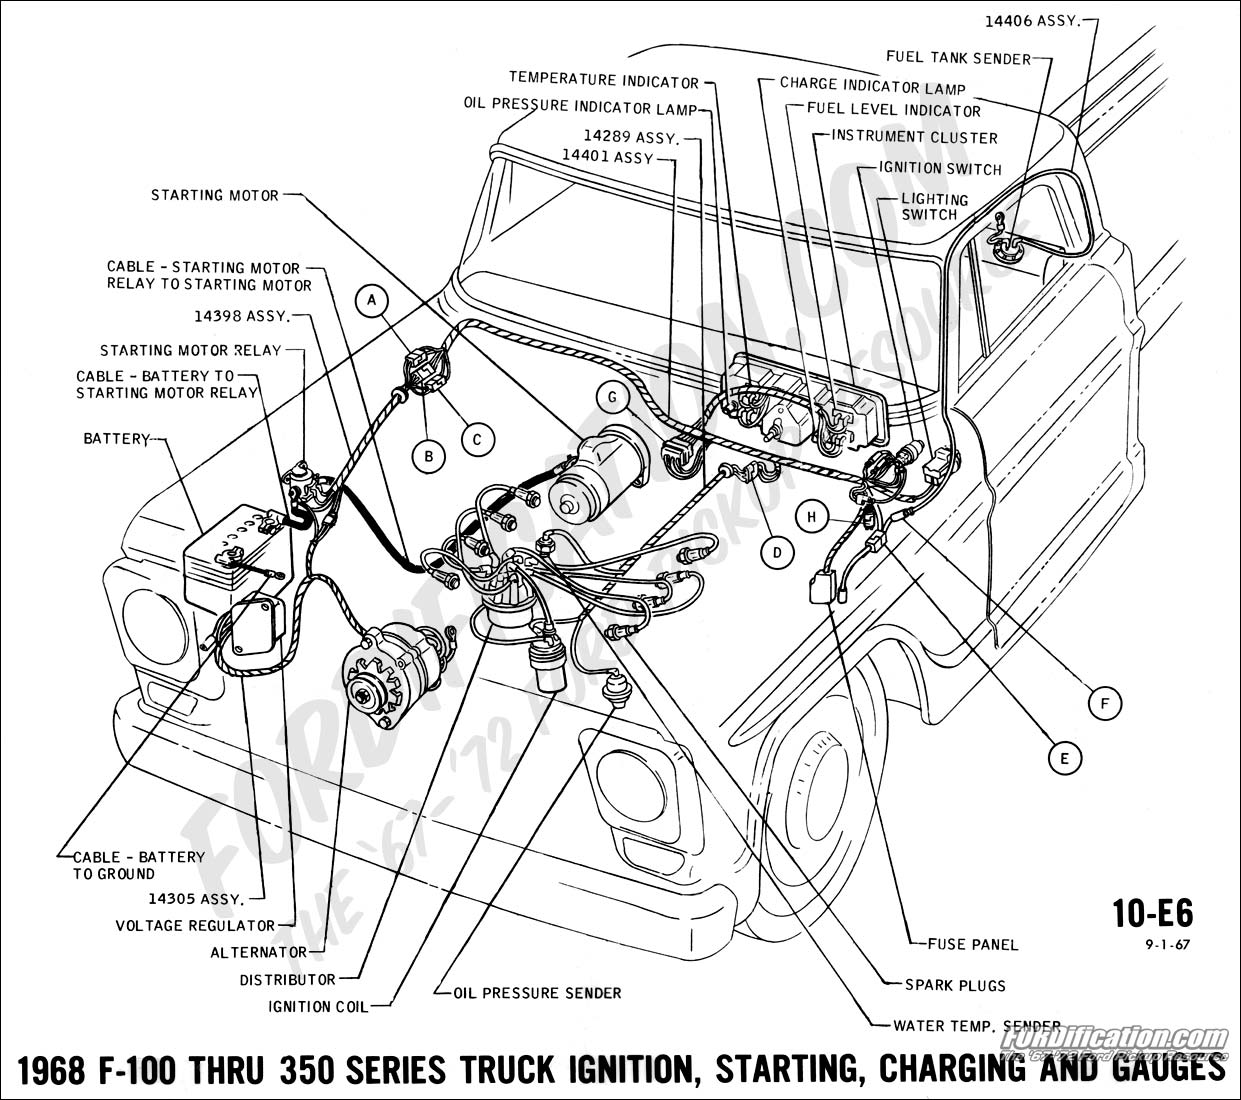 1970 ford truck alternator wiring diagram wiring diagram m9ford truck technical drawings and schematics section h wiring 1970 ford truck alternator wiring diagram